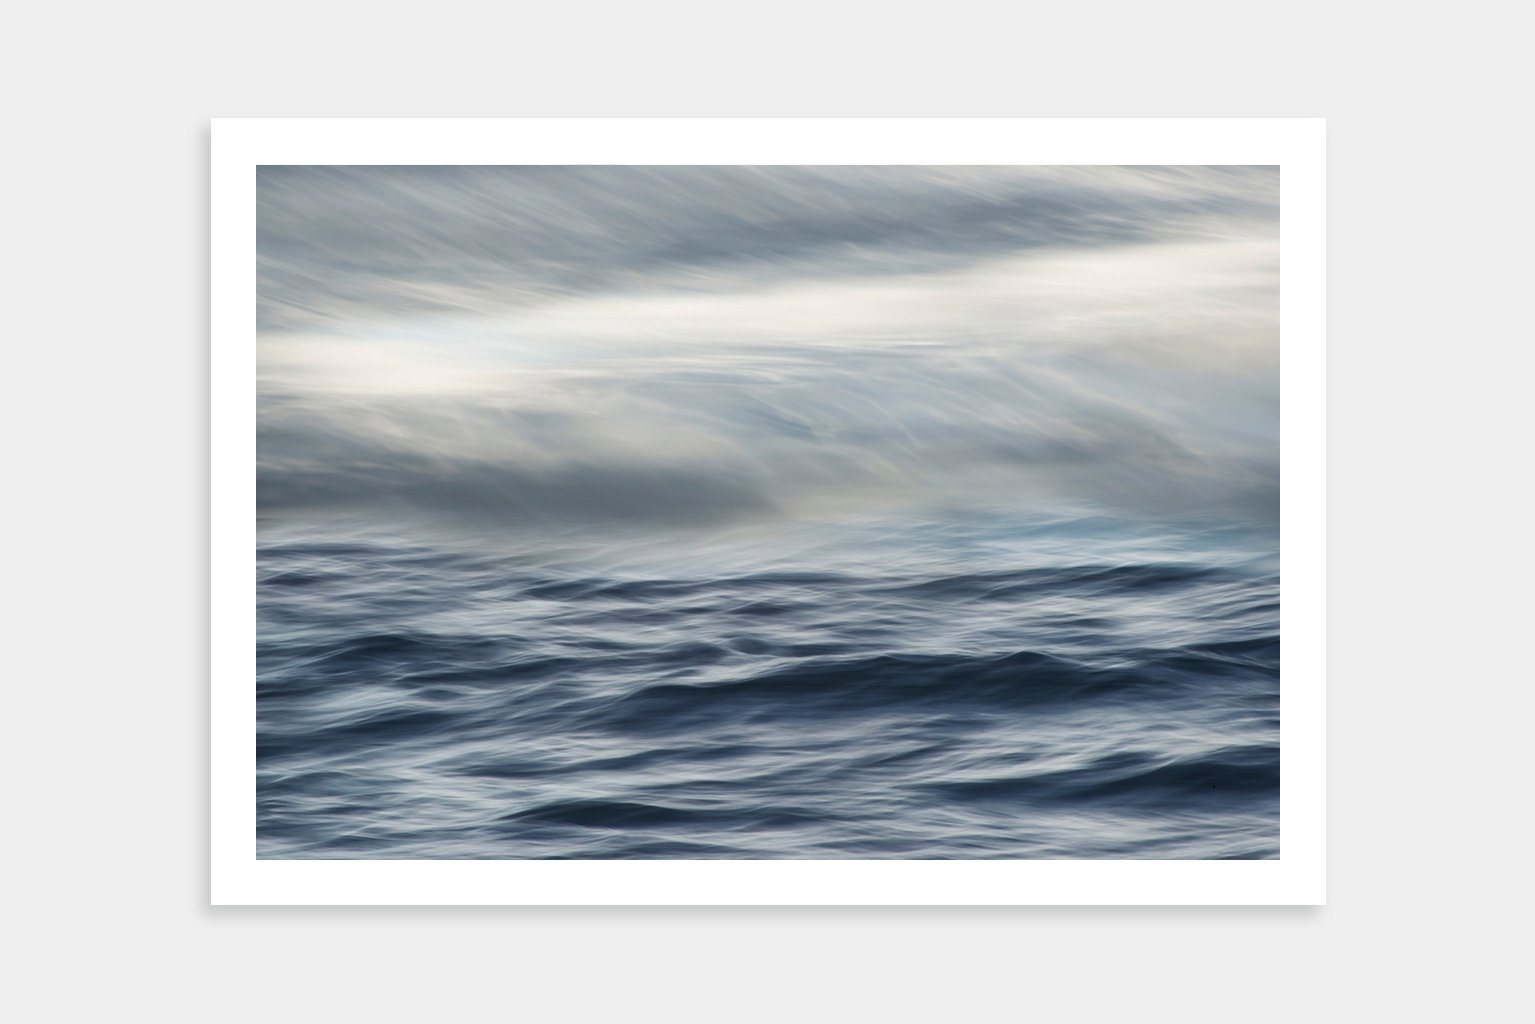 seascape artists artwork